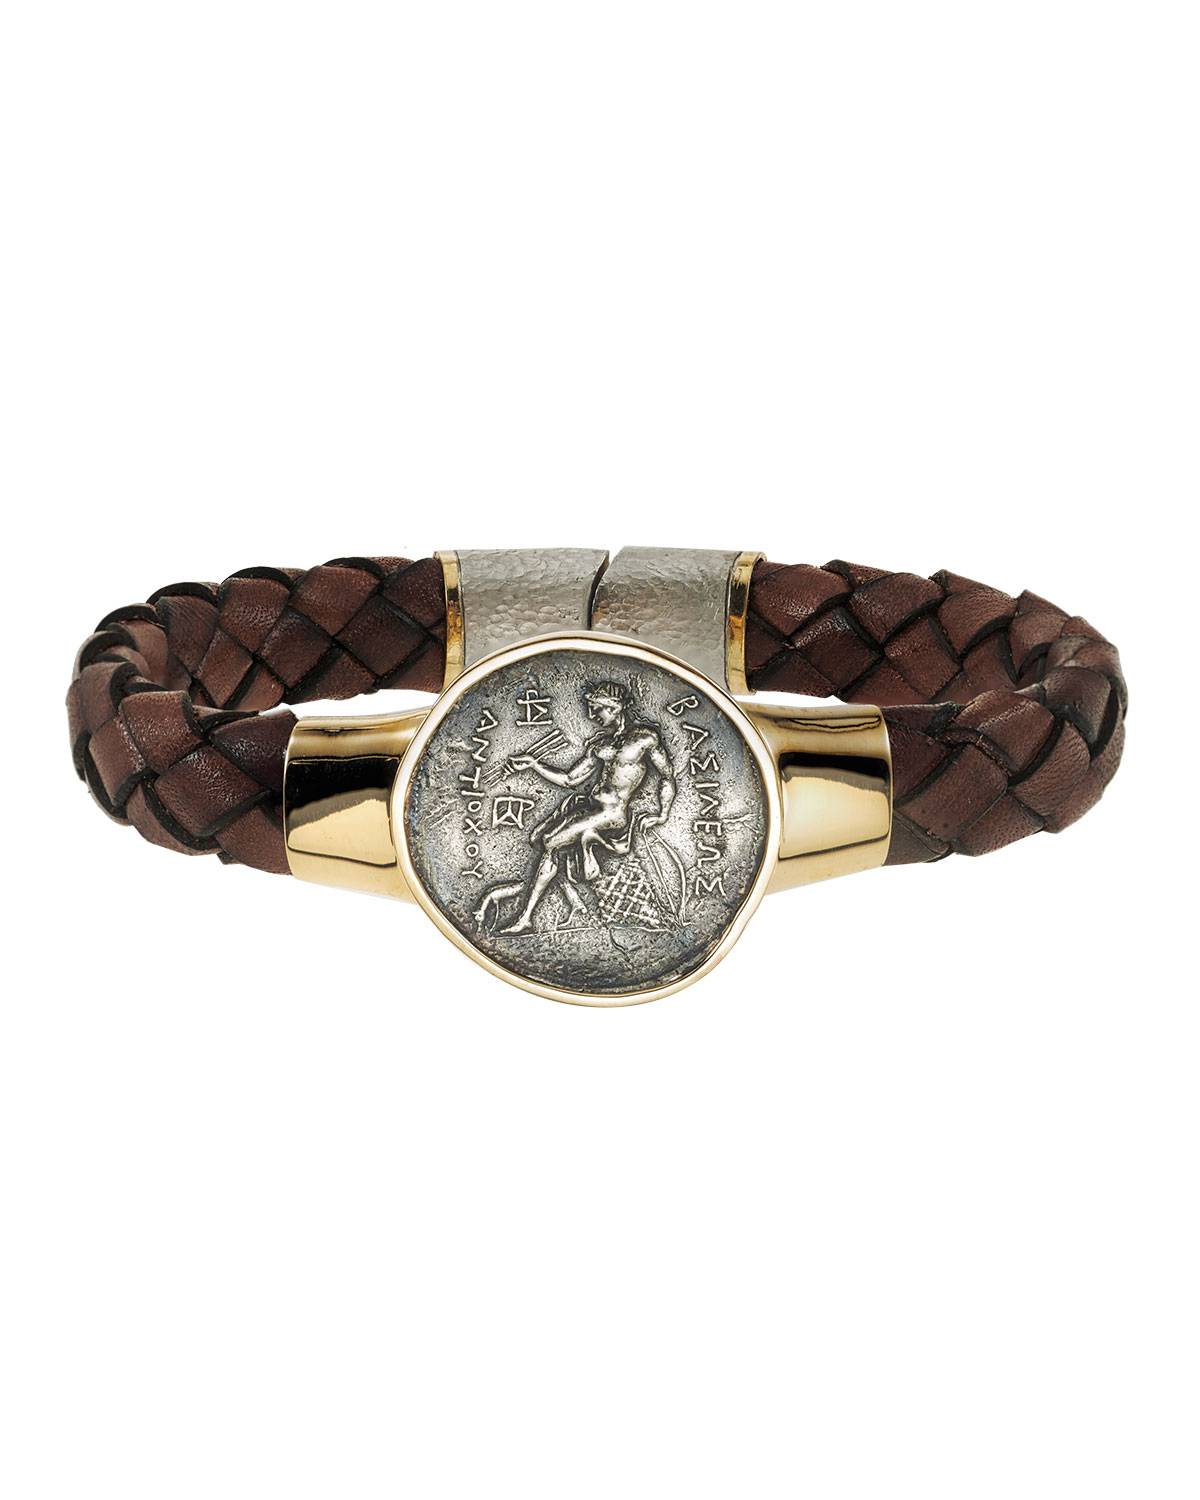 Jorge Adeler Men's Ancient Apollo Coin Braided Leather Bracelet